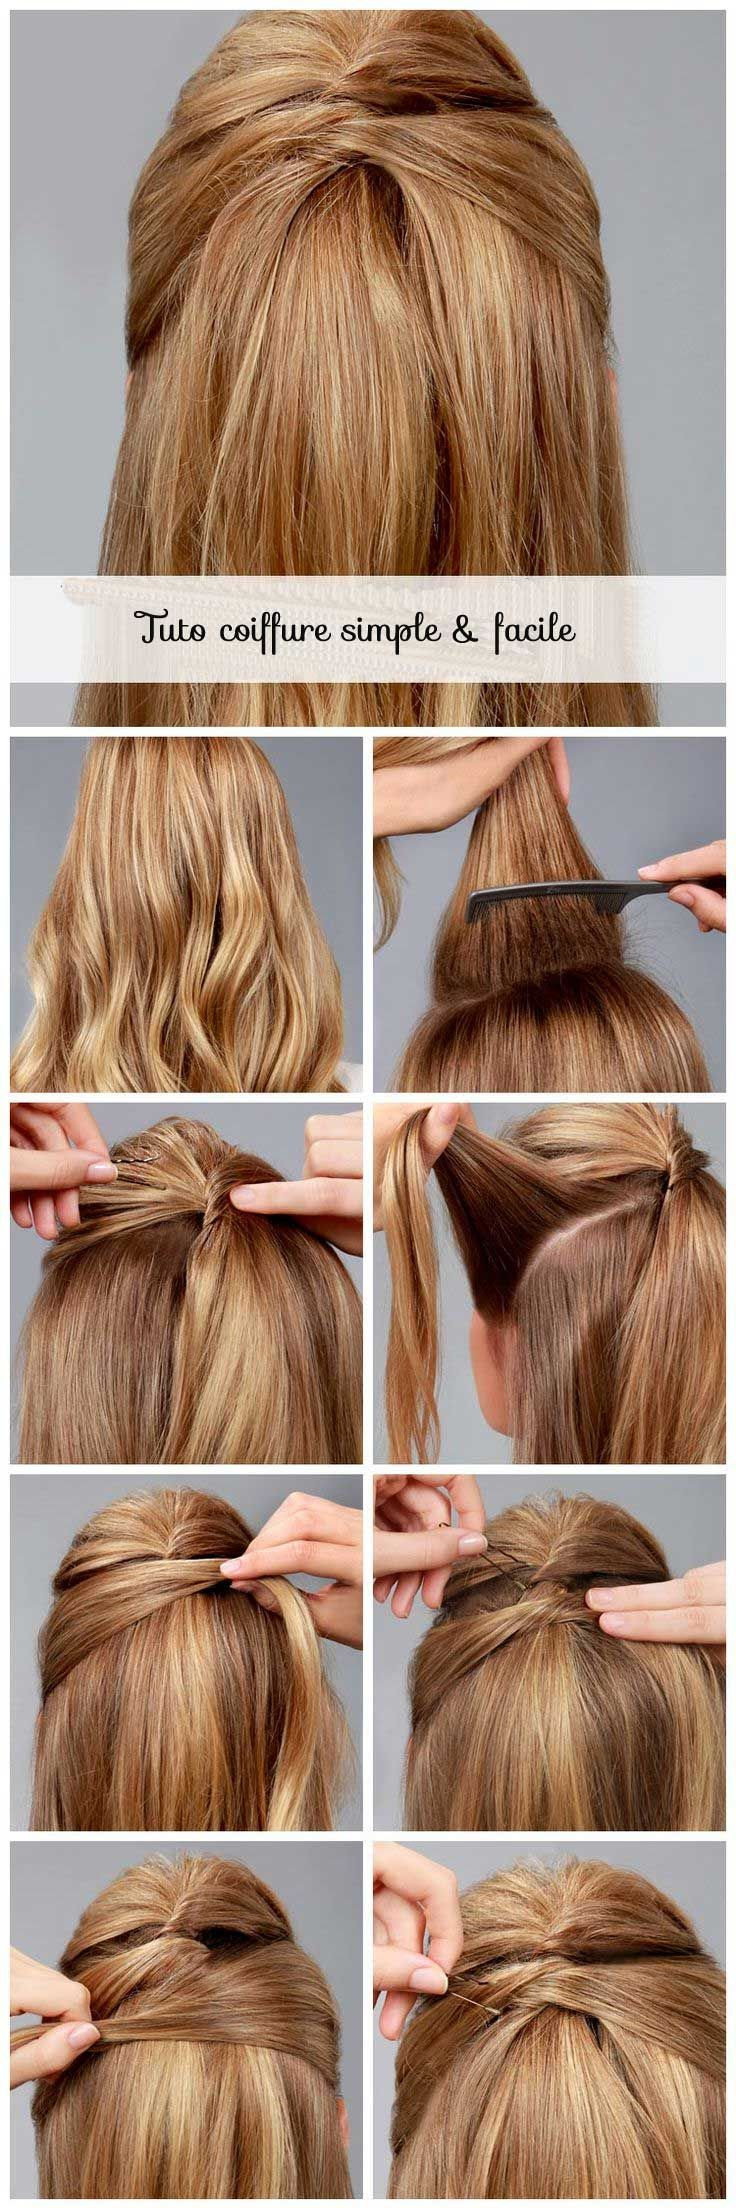 Souvent 310 best tuto de coiffure images on Pinterest | Hairstyles, Hair  EC84